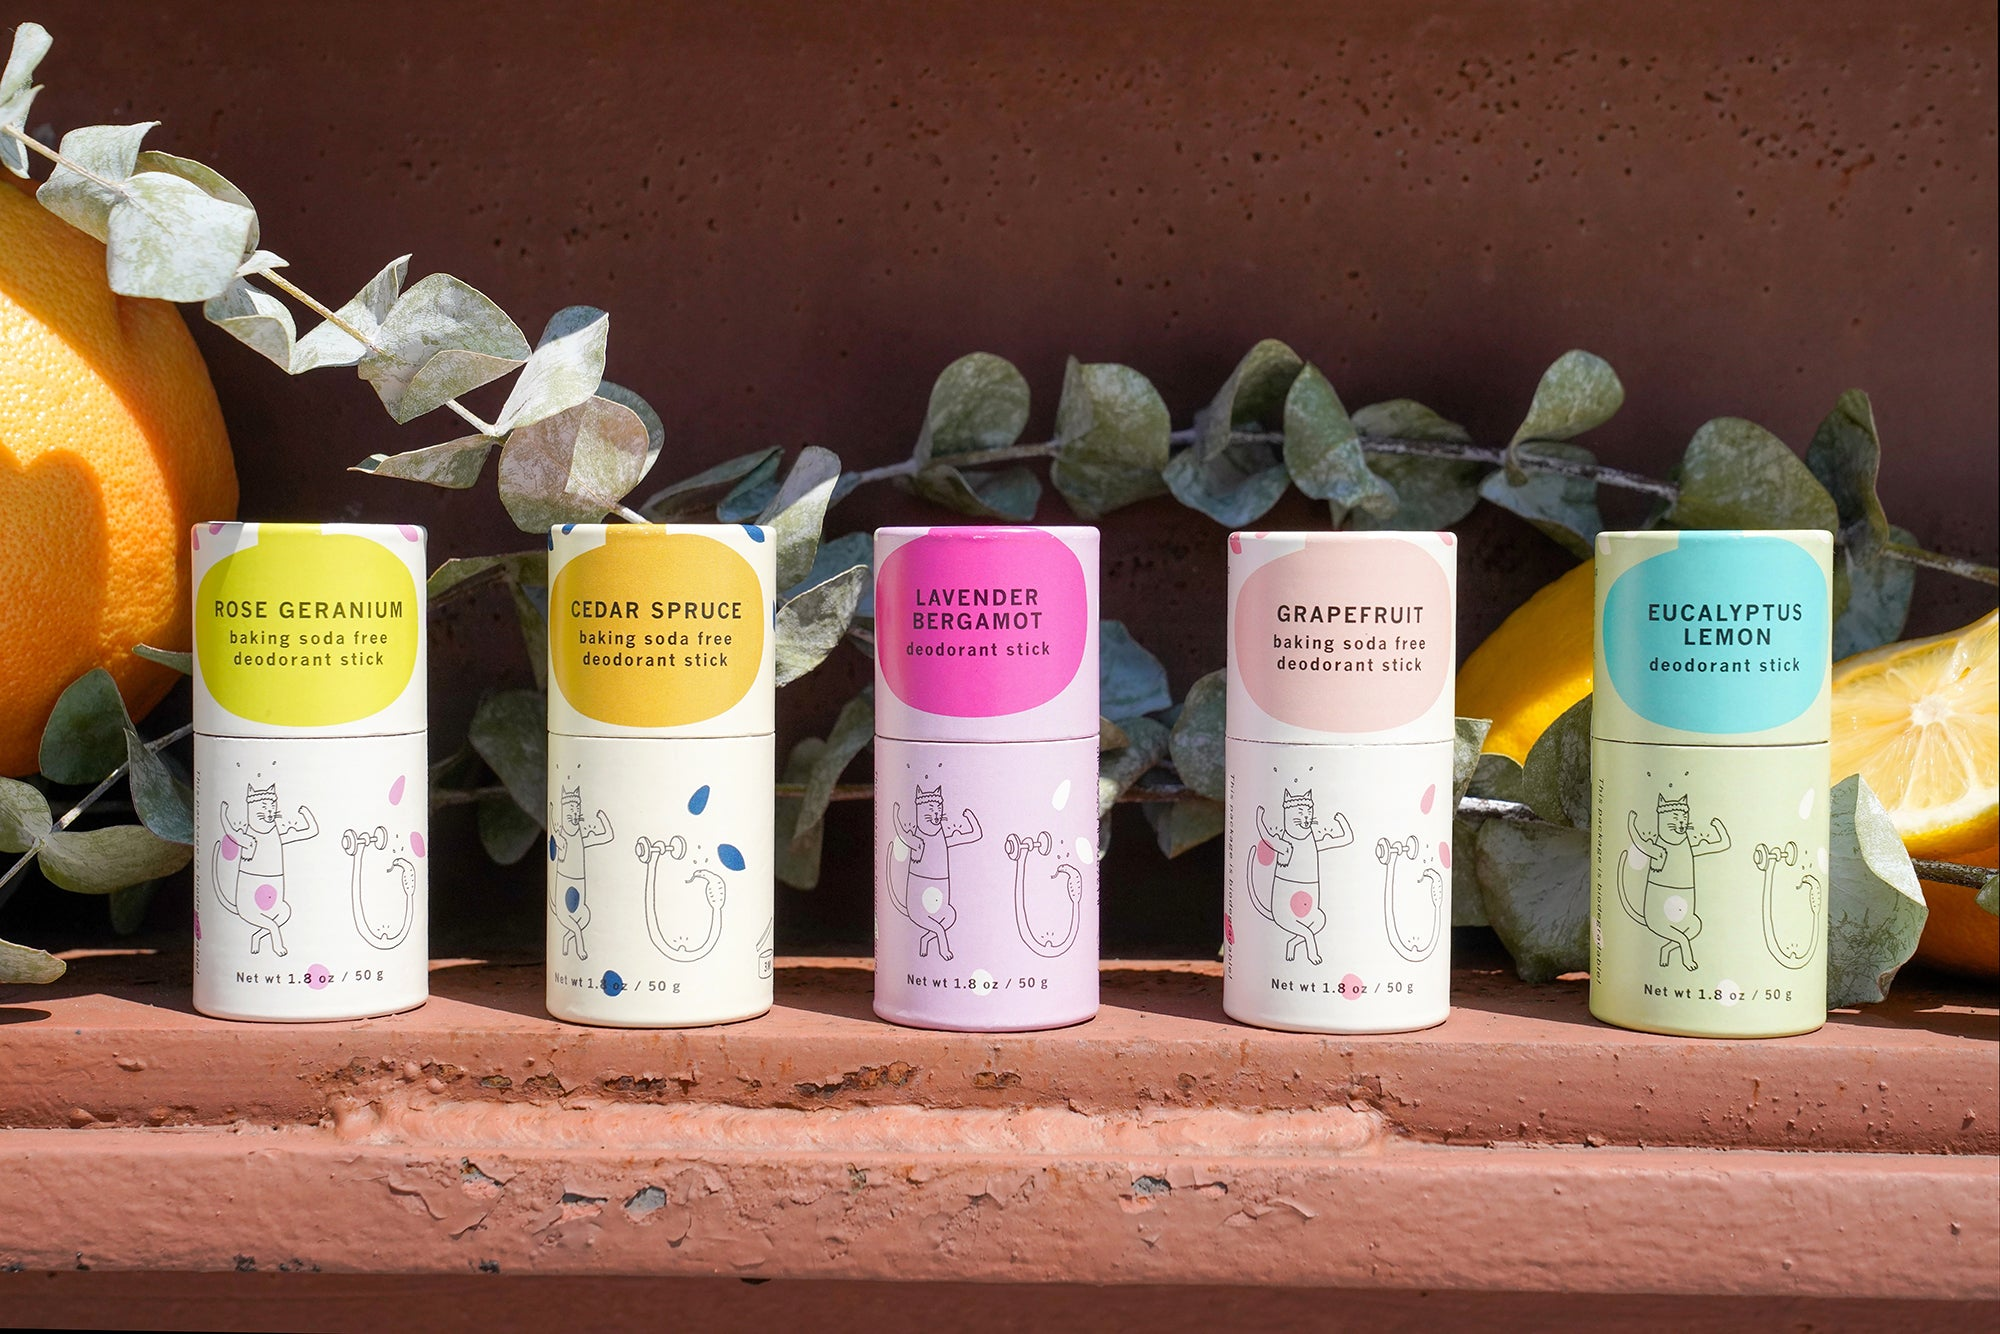 Meow Meow Tweet's 5 deodorant sticks lined up neatly next to one another sit on a clay-colored shelf with peeling paint. There's a stalk of eucalyptus behind them and an orange in the background of the leftmost edge.